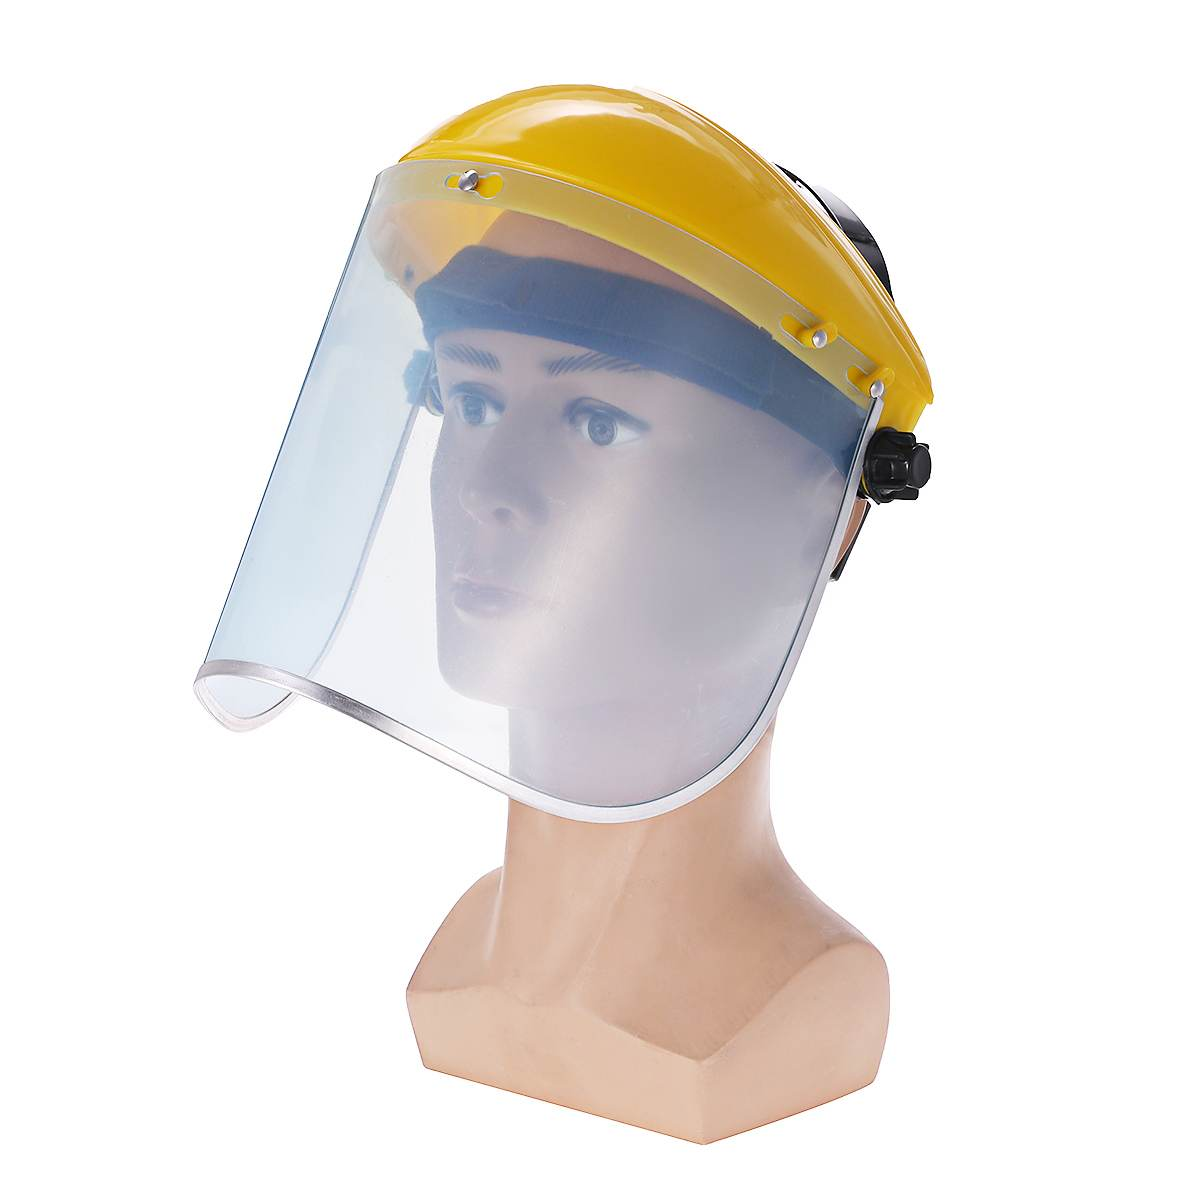 Protective Full Face Mask Welding Helmet Anti-UV Clear Safety Anti Splash Shield Visor Workplace Protection Supplies Anti-Shock